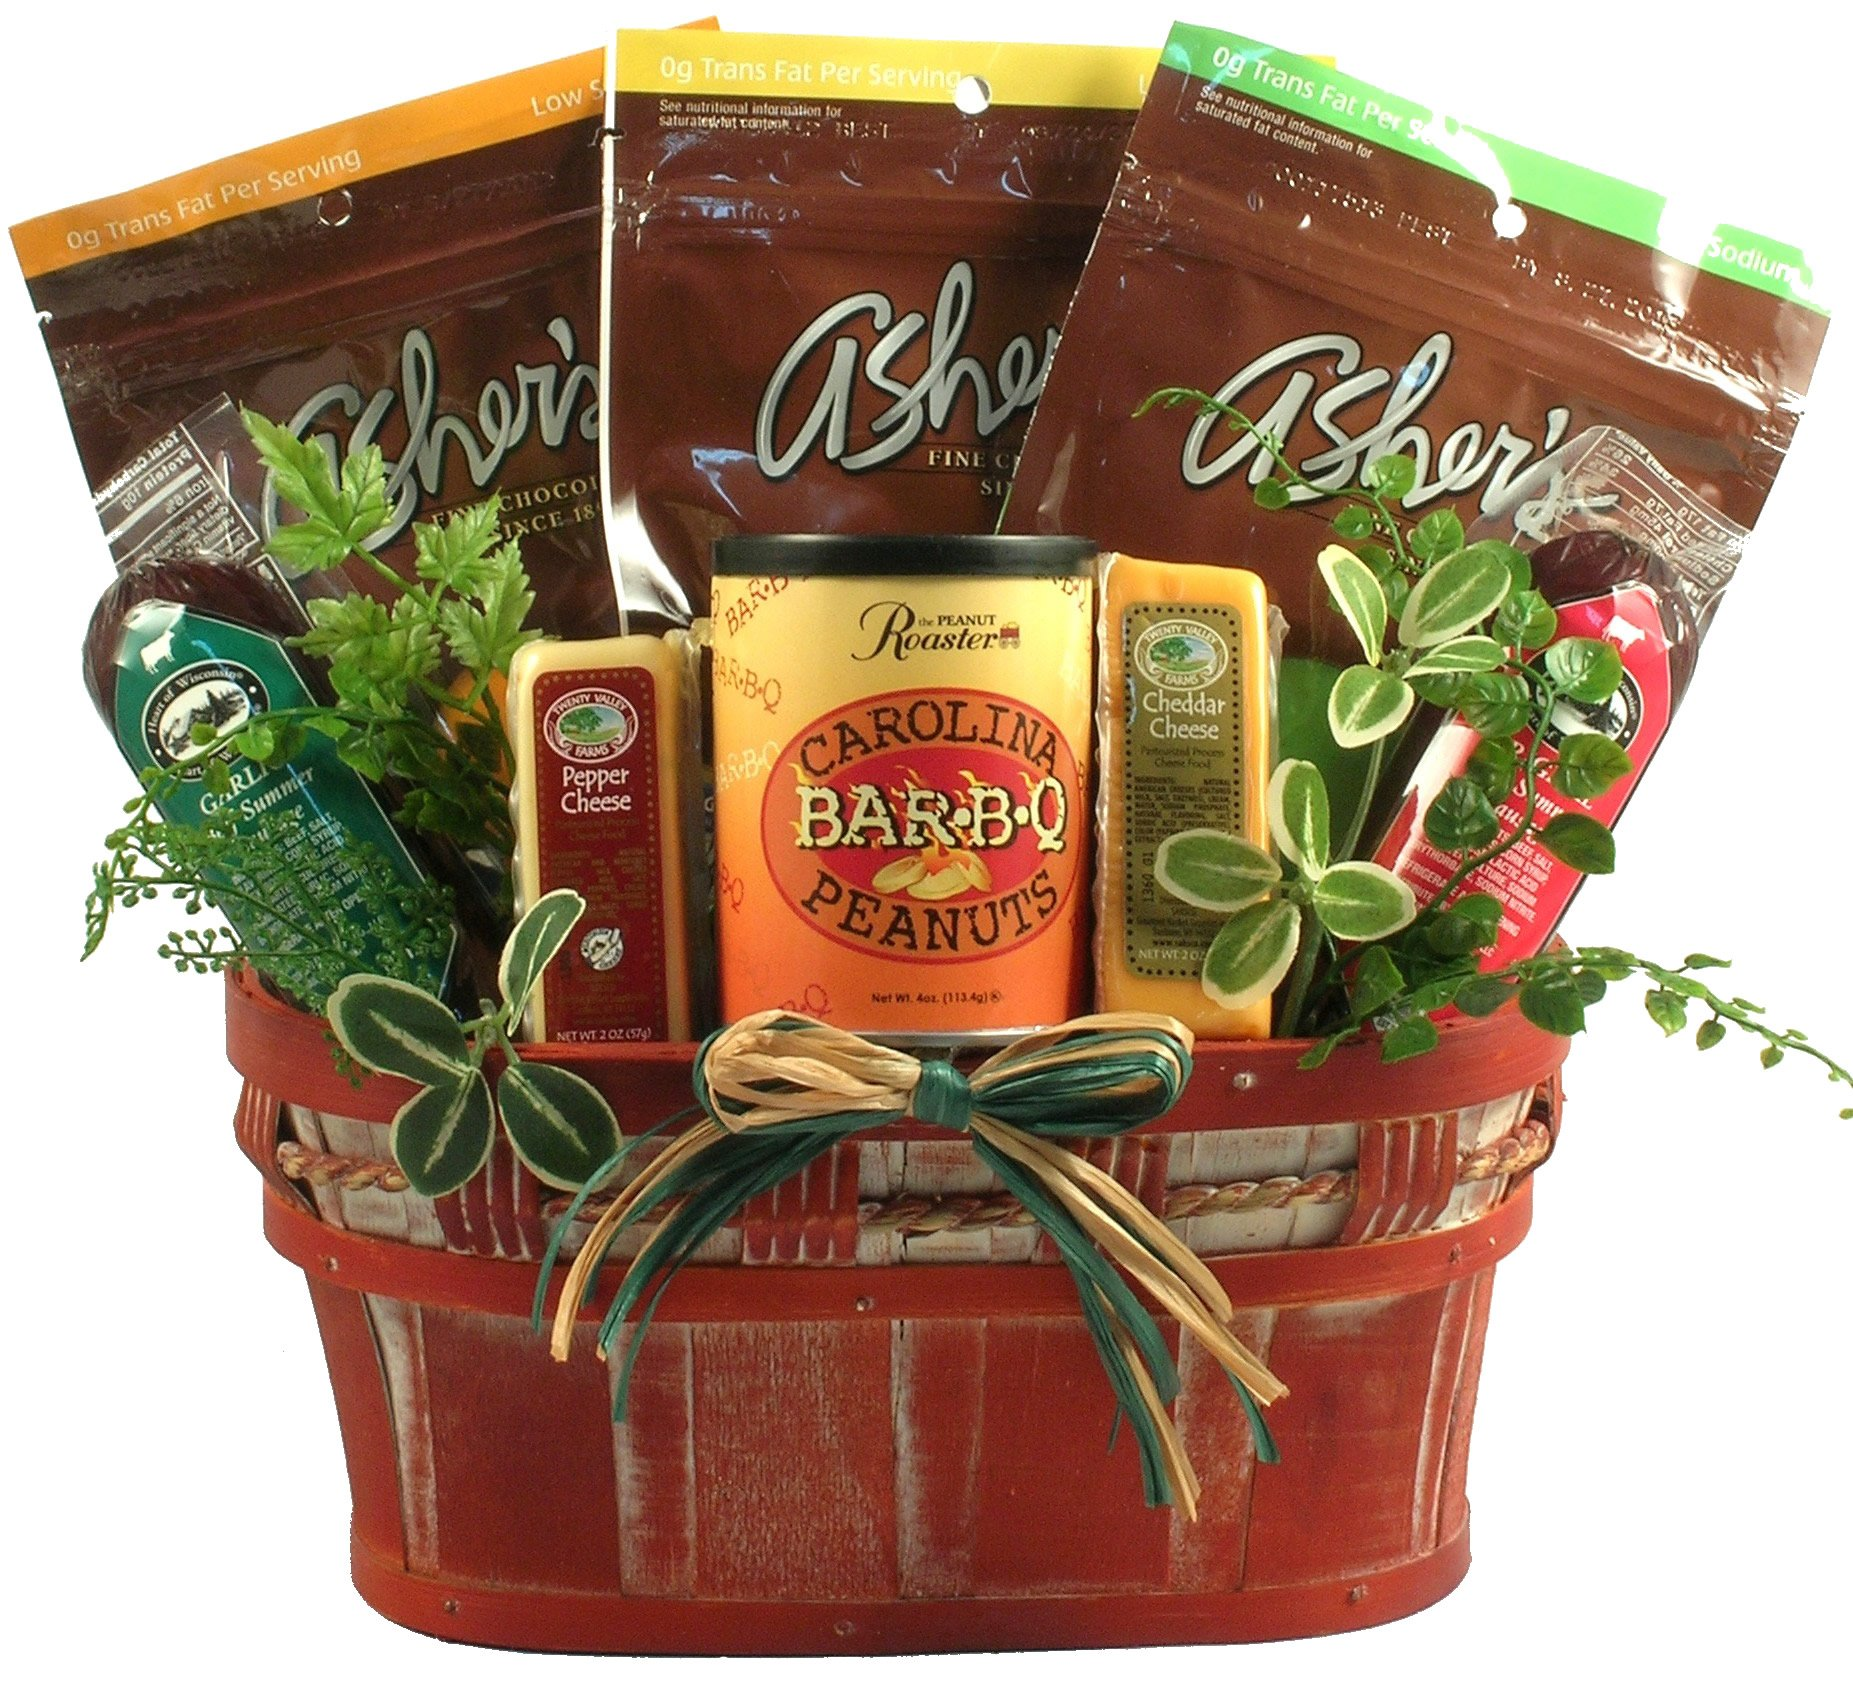 Healthy Living (Chocolates), Sugar Free Gift Basket with Diabetic Friendly Sweet and Savory Snacks Including Nuts, Sausage, Cheese and More